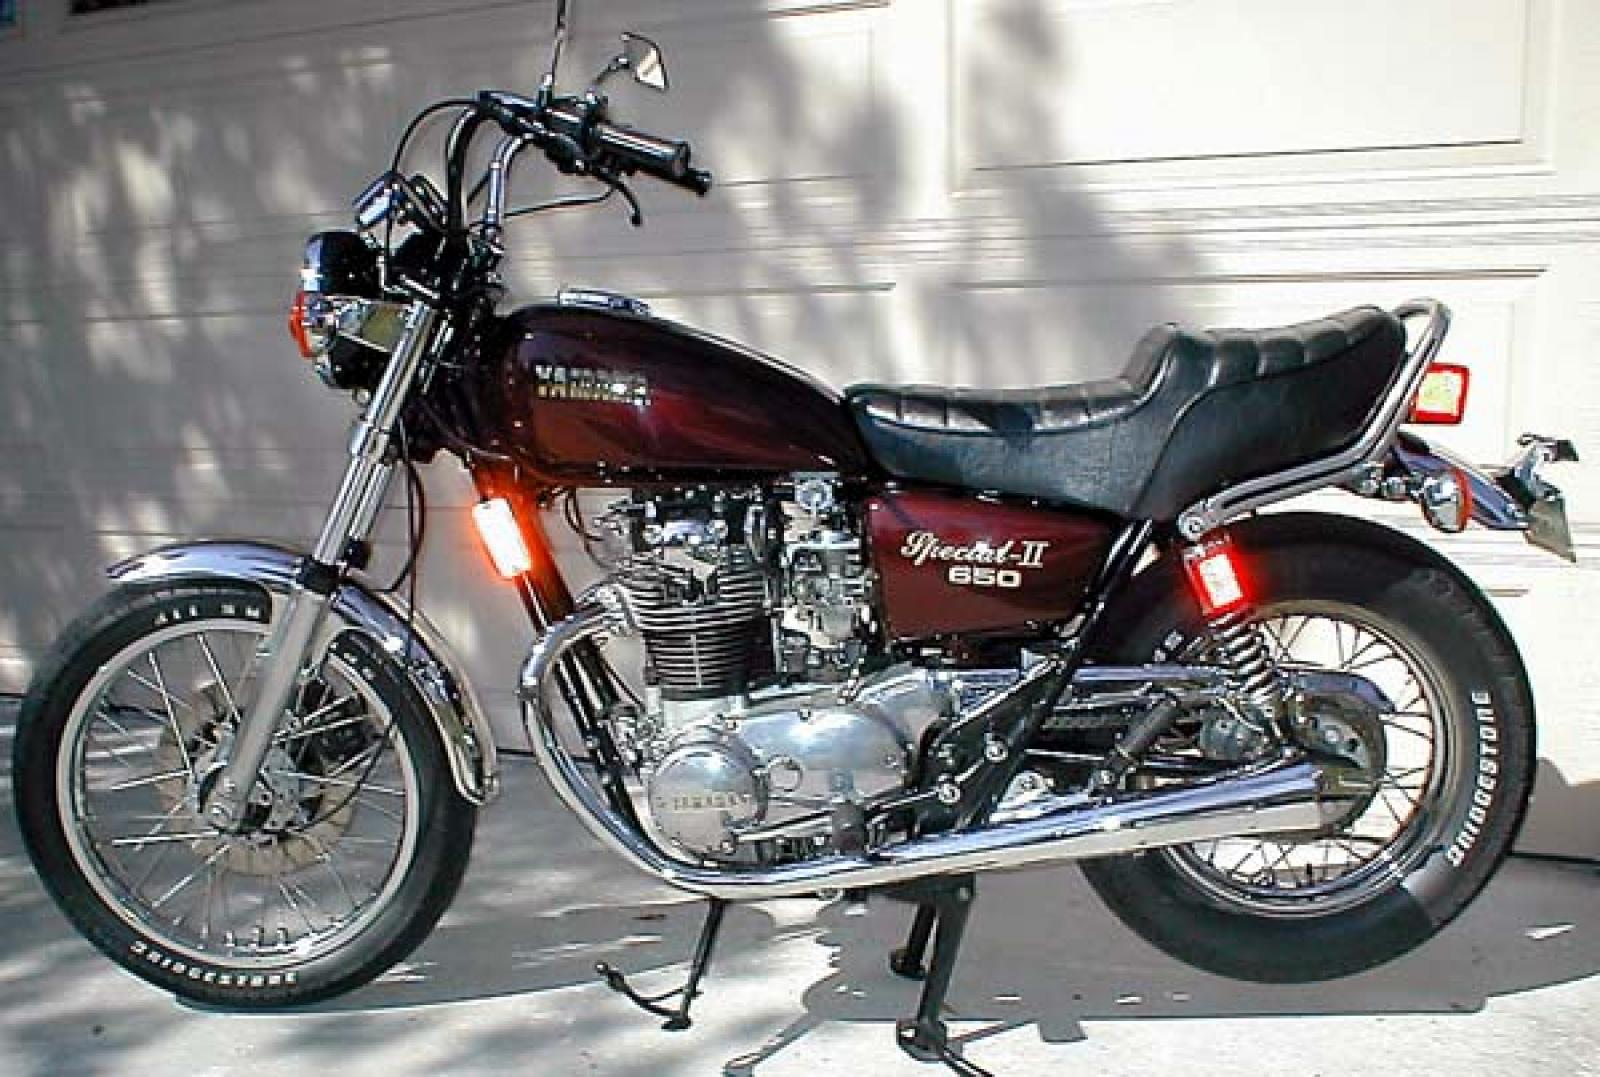 Xs 400 Special Wiring Diagram Trusted Diagrams 1981 Yamaha Images Xs400 4k Wallpapers Design 75 Sohc